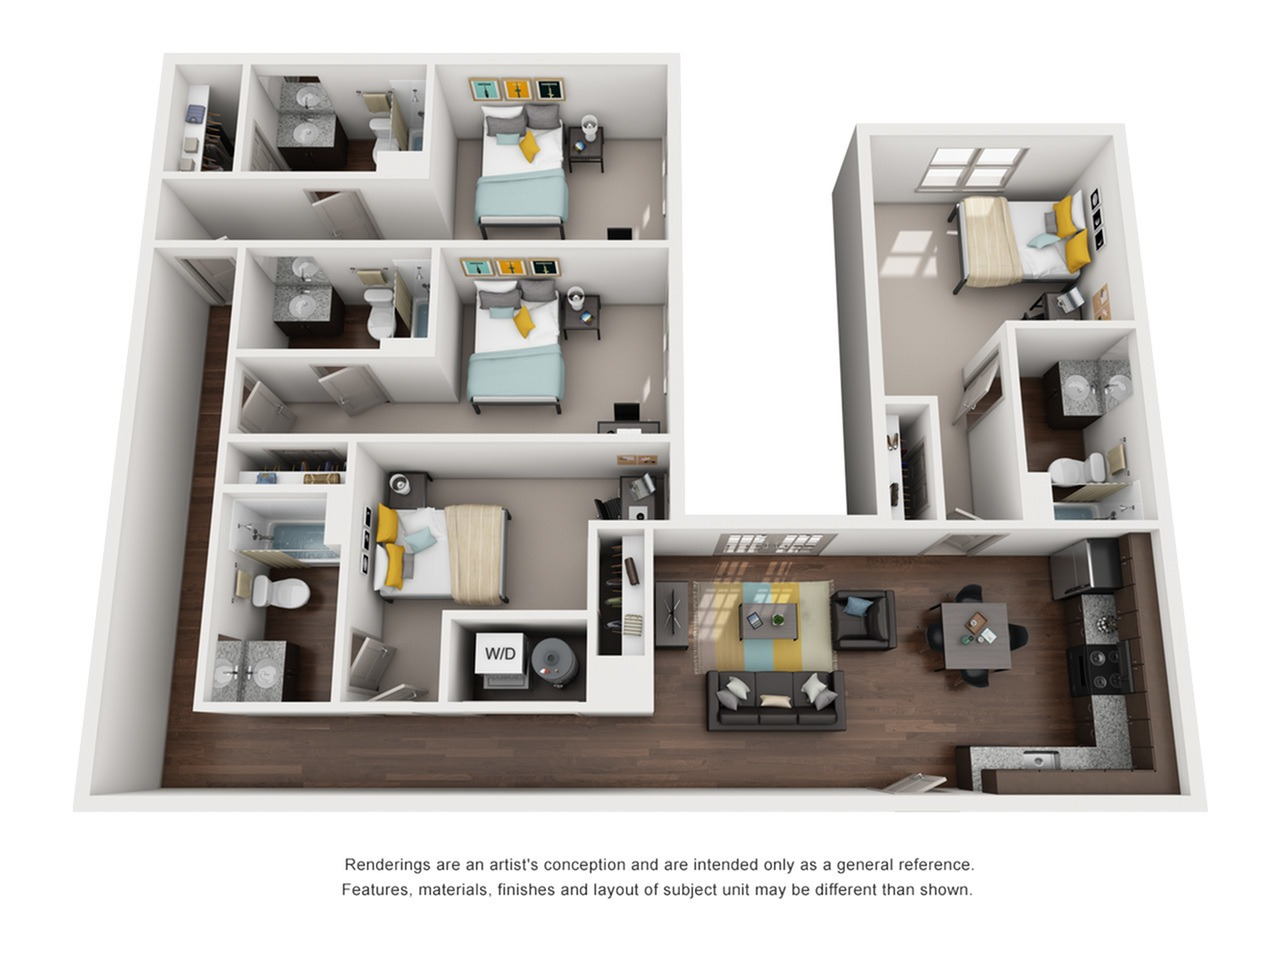 4 bedroom apartments in tallahassee